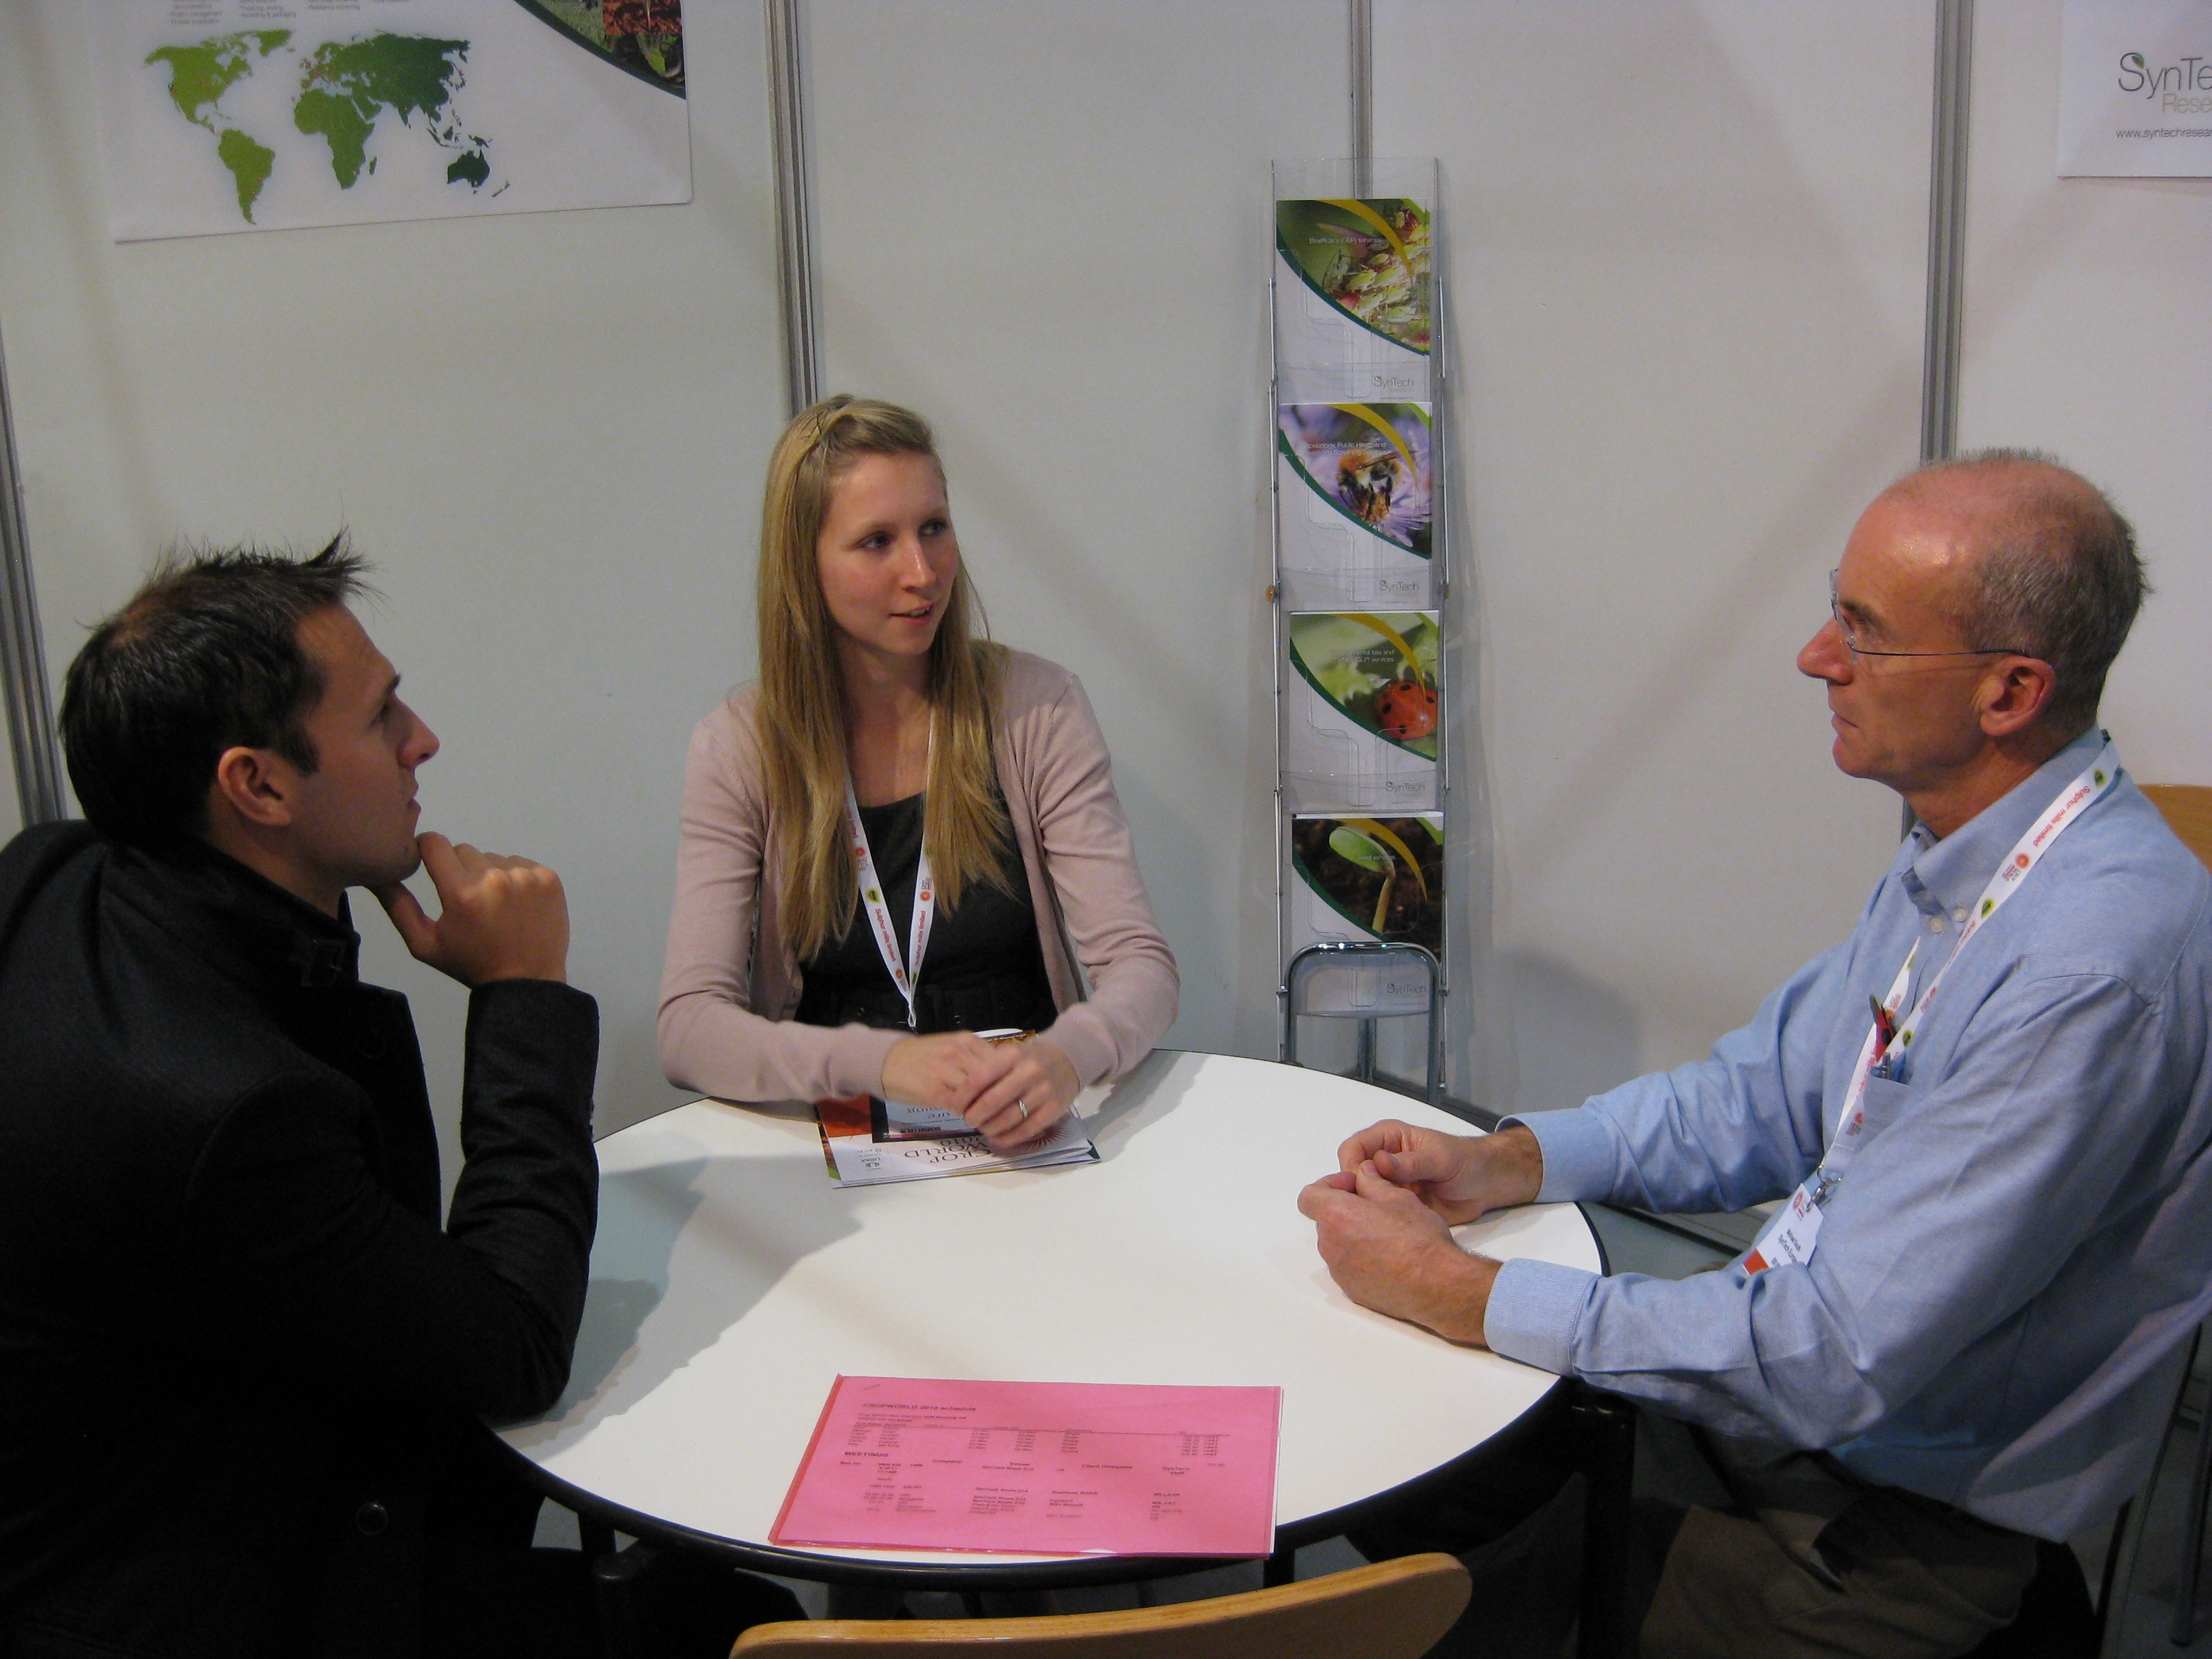 SynTech Specialist Services launched at CropWorld 2010